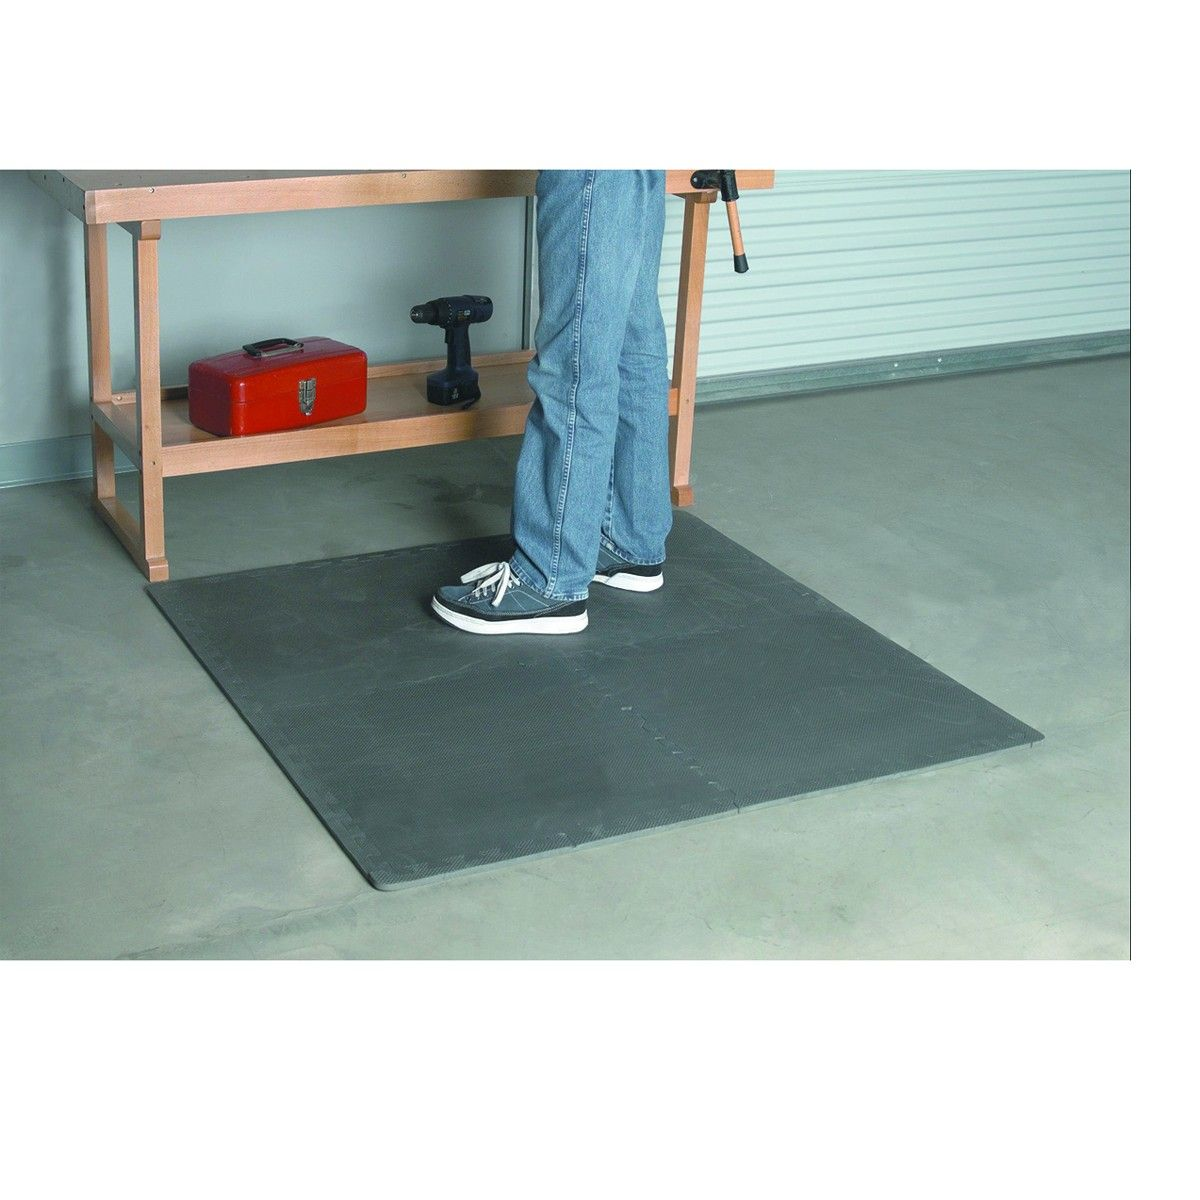 Rubber floor mats standing - Anti Fatigue Foam Mat Set 4 Pc